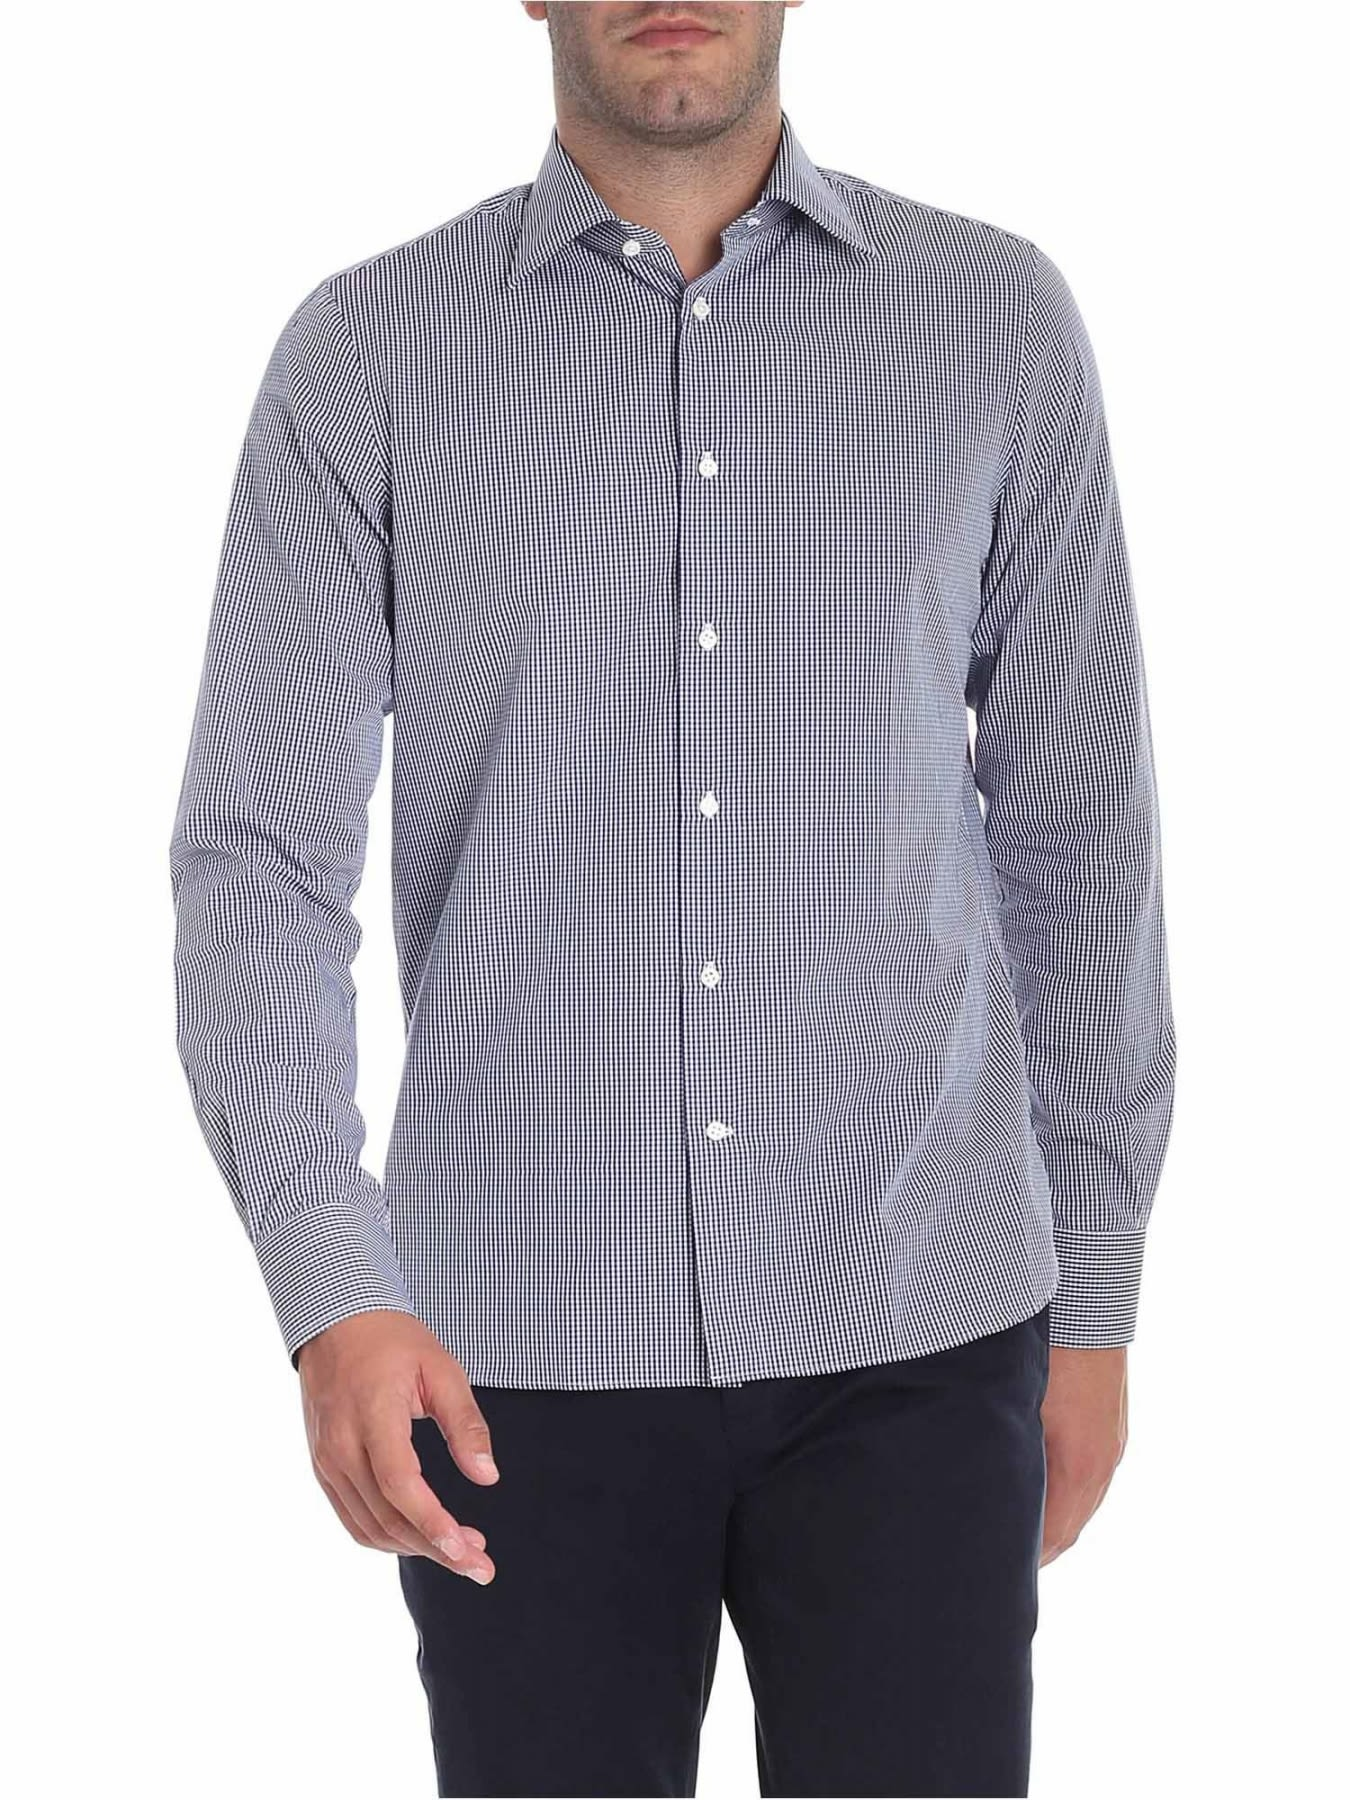 G. INGLESE Cotton Shirt in Blue